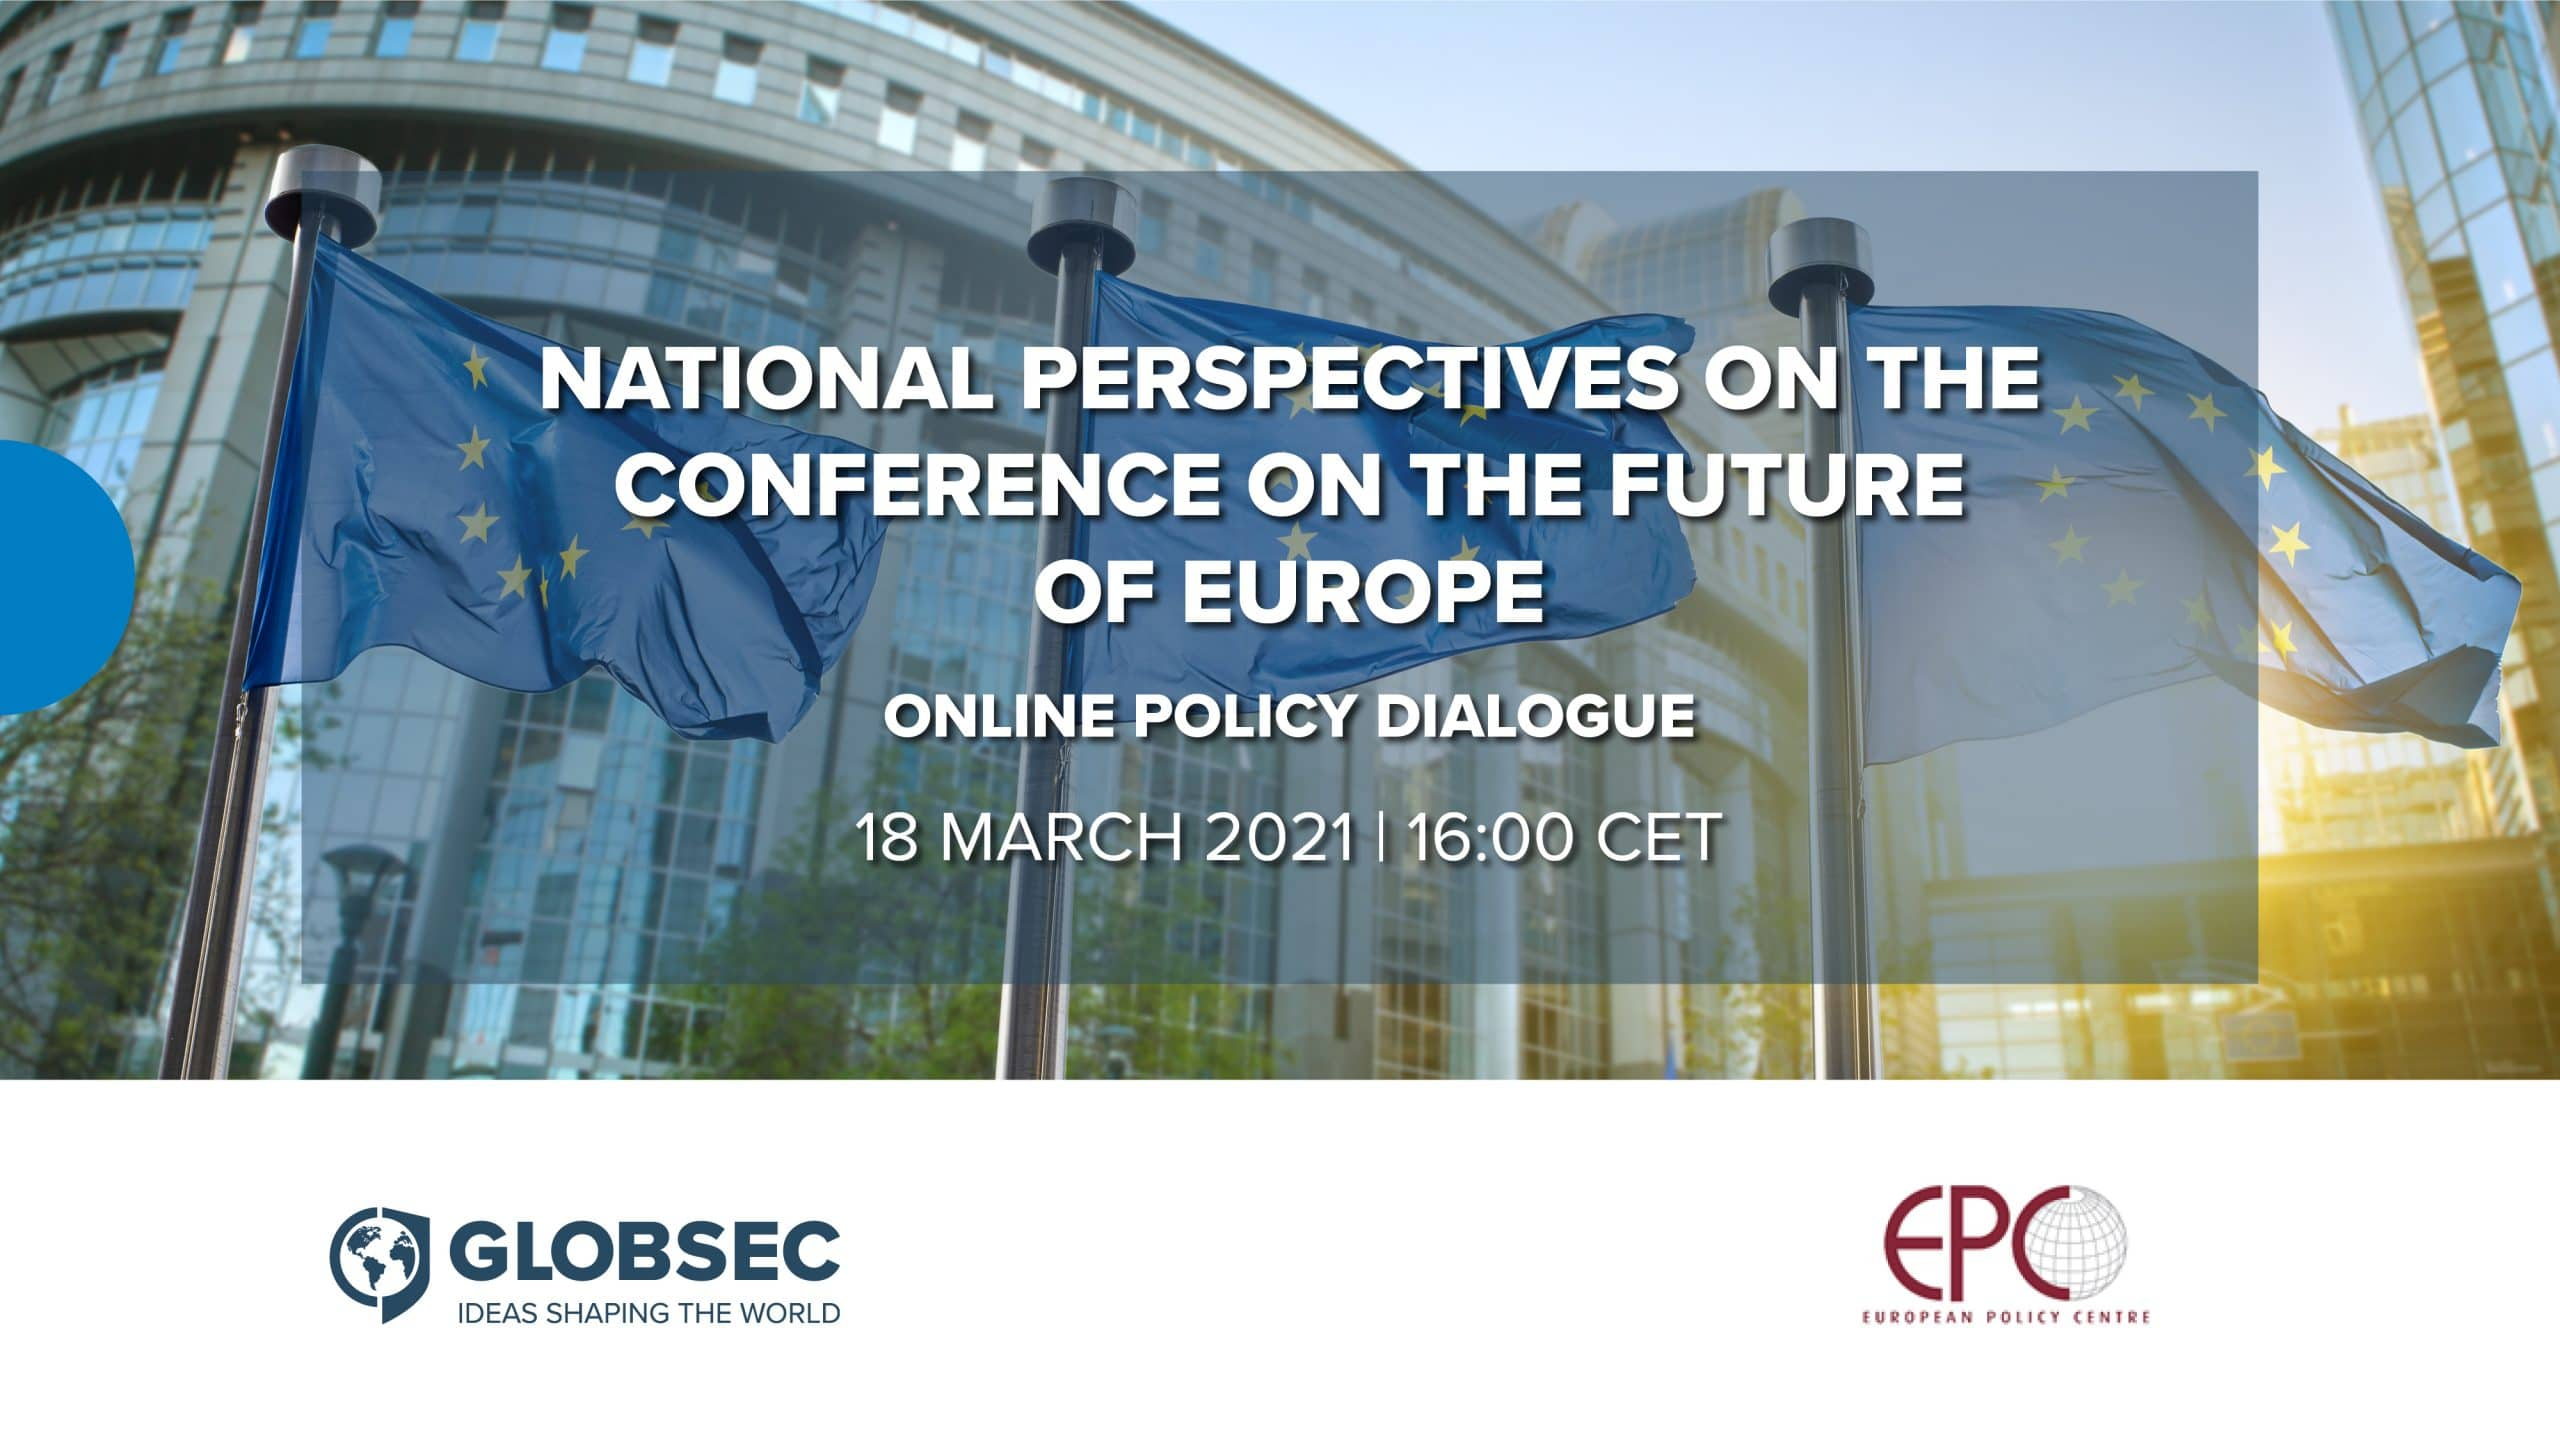 National perspectives on the Conference on the Future of Europe